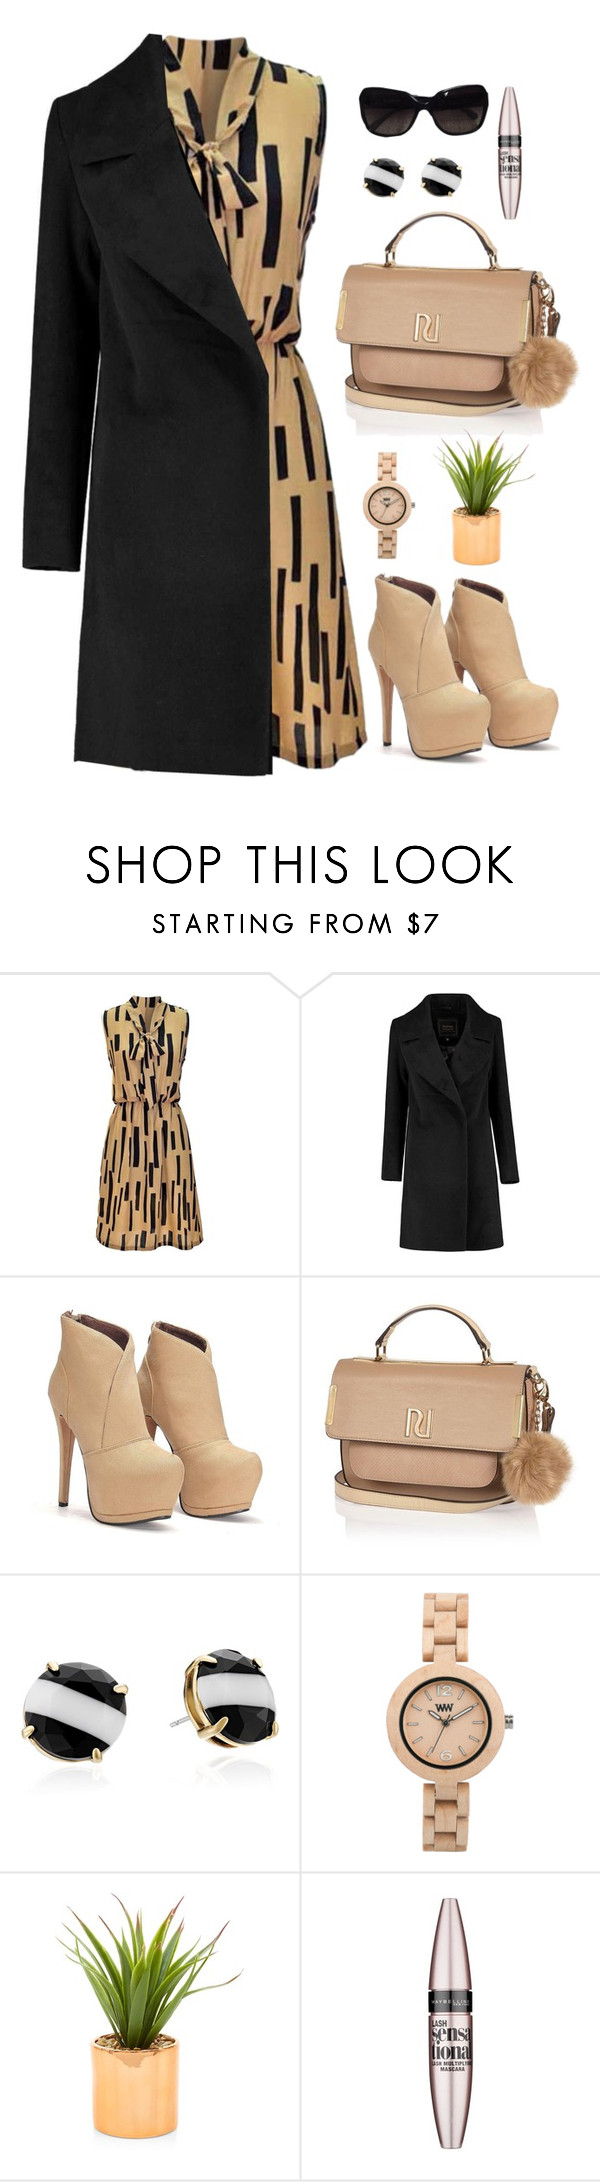 """""""Look 1 02/15/2016"""" by aneetaalex ❤ liked on Polyvore featuring River Island, Kate Spade, WeWood, Maybelline, Chanel, women's clothing, women, female, woman and misses"""